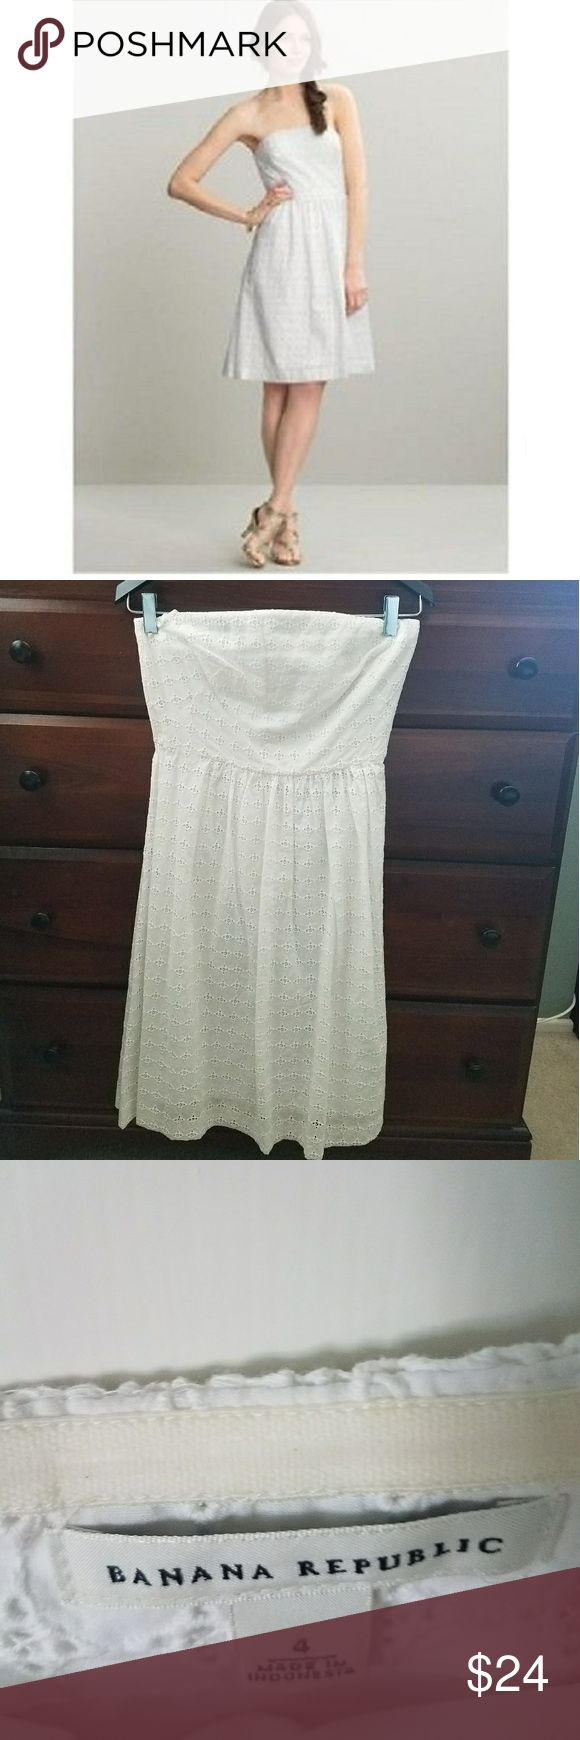 """BANANA REPUBLIC Strapless Sz 4 White Eyelet dress BANANA REPUBLIC Strapless Size 4 White Cotton Eyelet Summer Dress Classic Summer Dress from BANANA REPUBLIC. 100% Cotton White Eyelet Dress is strapless with built in bra and stays. Fitted bodice gives way to full skirt at waist. Concealed back zipper with hook-eye closure. Matching white 100% Cotton lining. This is a Beautiful Dress, a classic which will ALWAYS be in Style! In Excellent Condition!  Sizes 4: 32/34"""" bust, 28"""" Waist, 38/40""""…"""